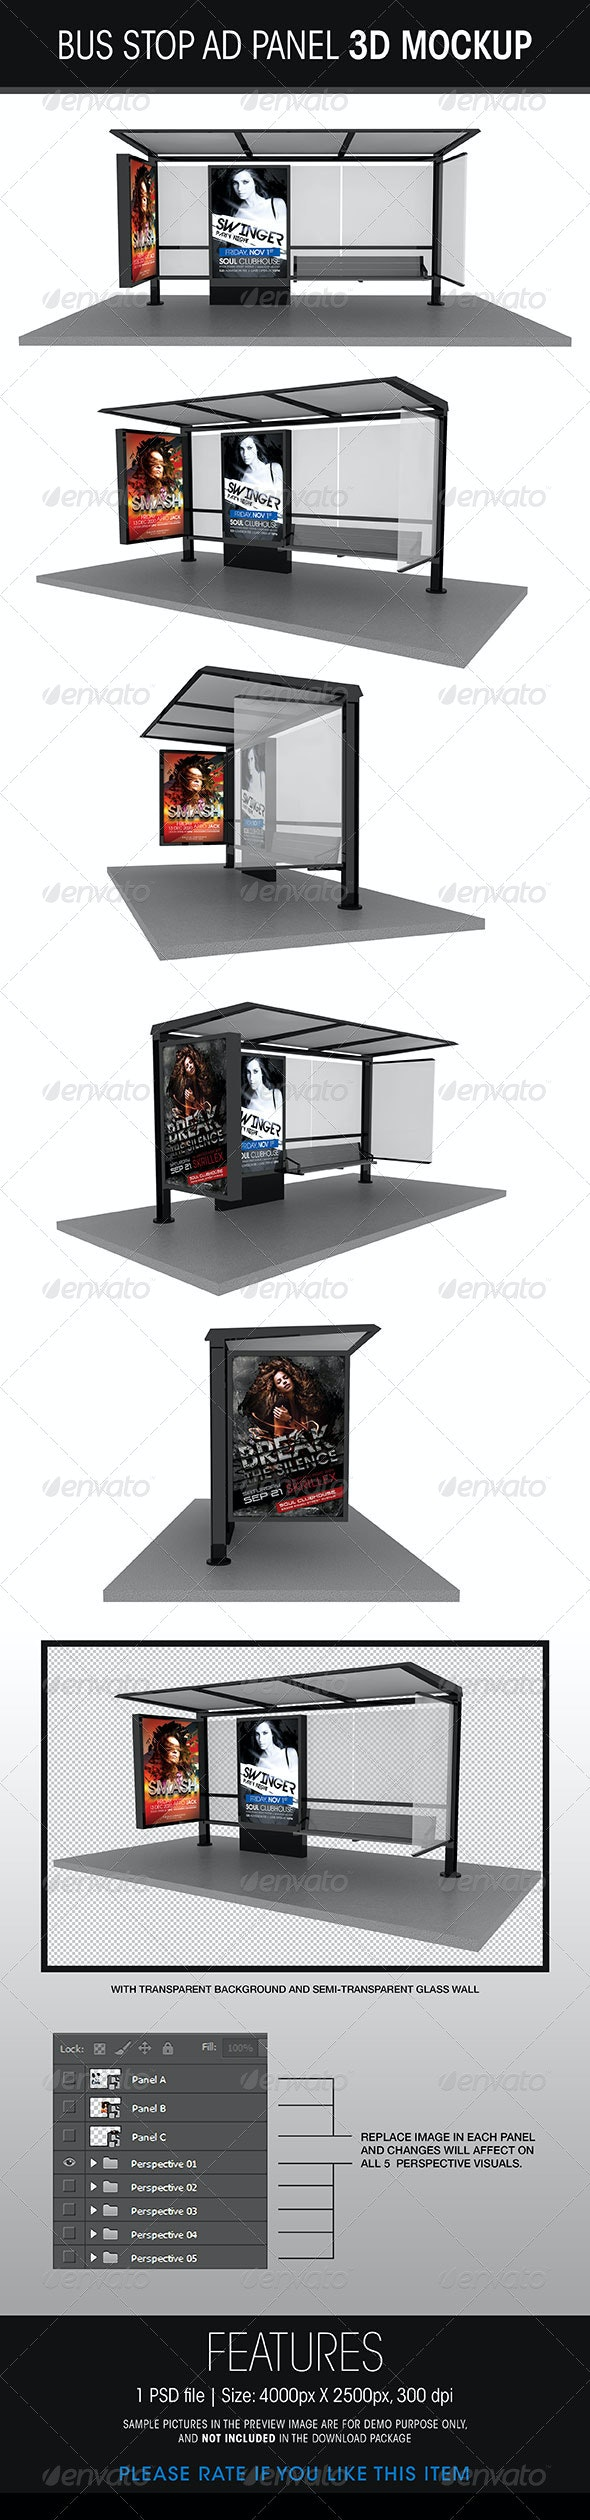 Bus Stop Ad Panel 3D Mockup - Posters Print